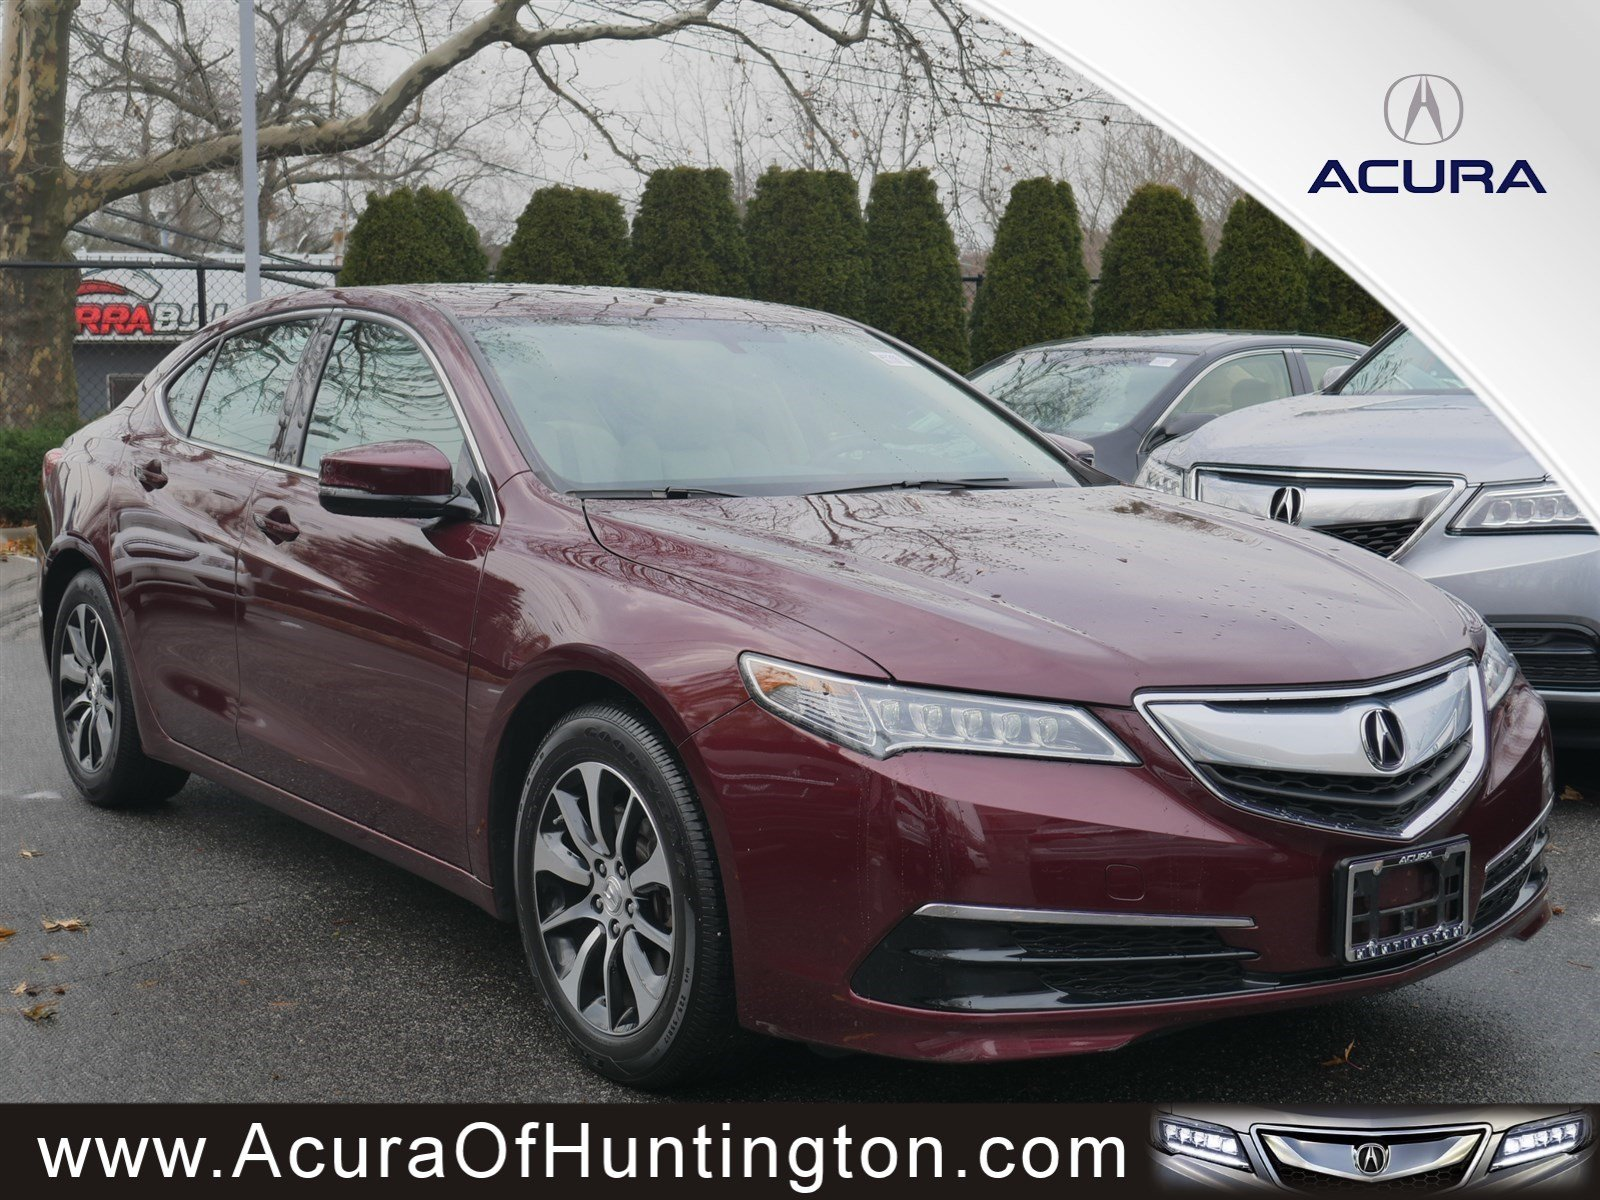 Pre Owned 2015 Acura TLX 4dr Car in Huntington UA7260